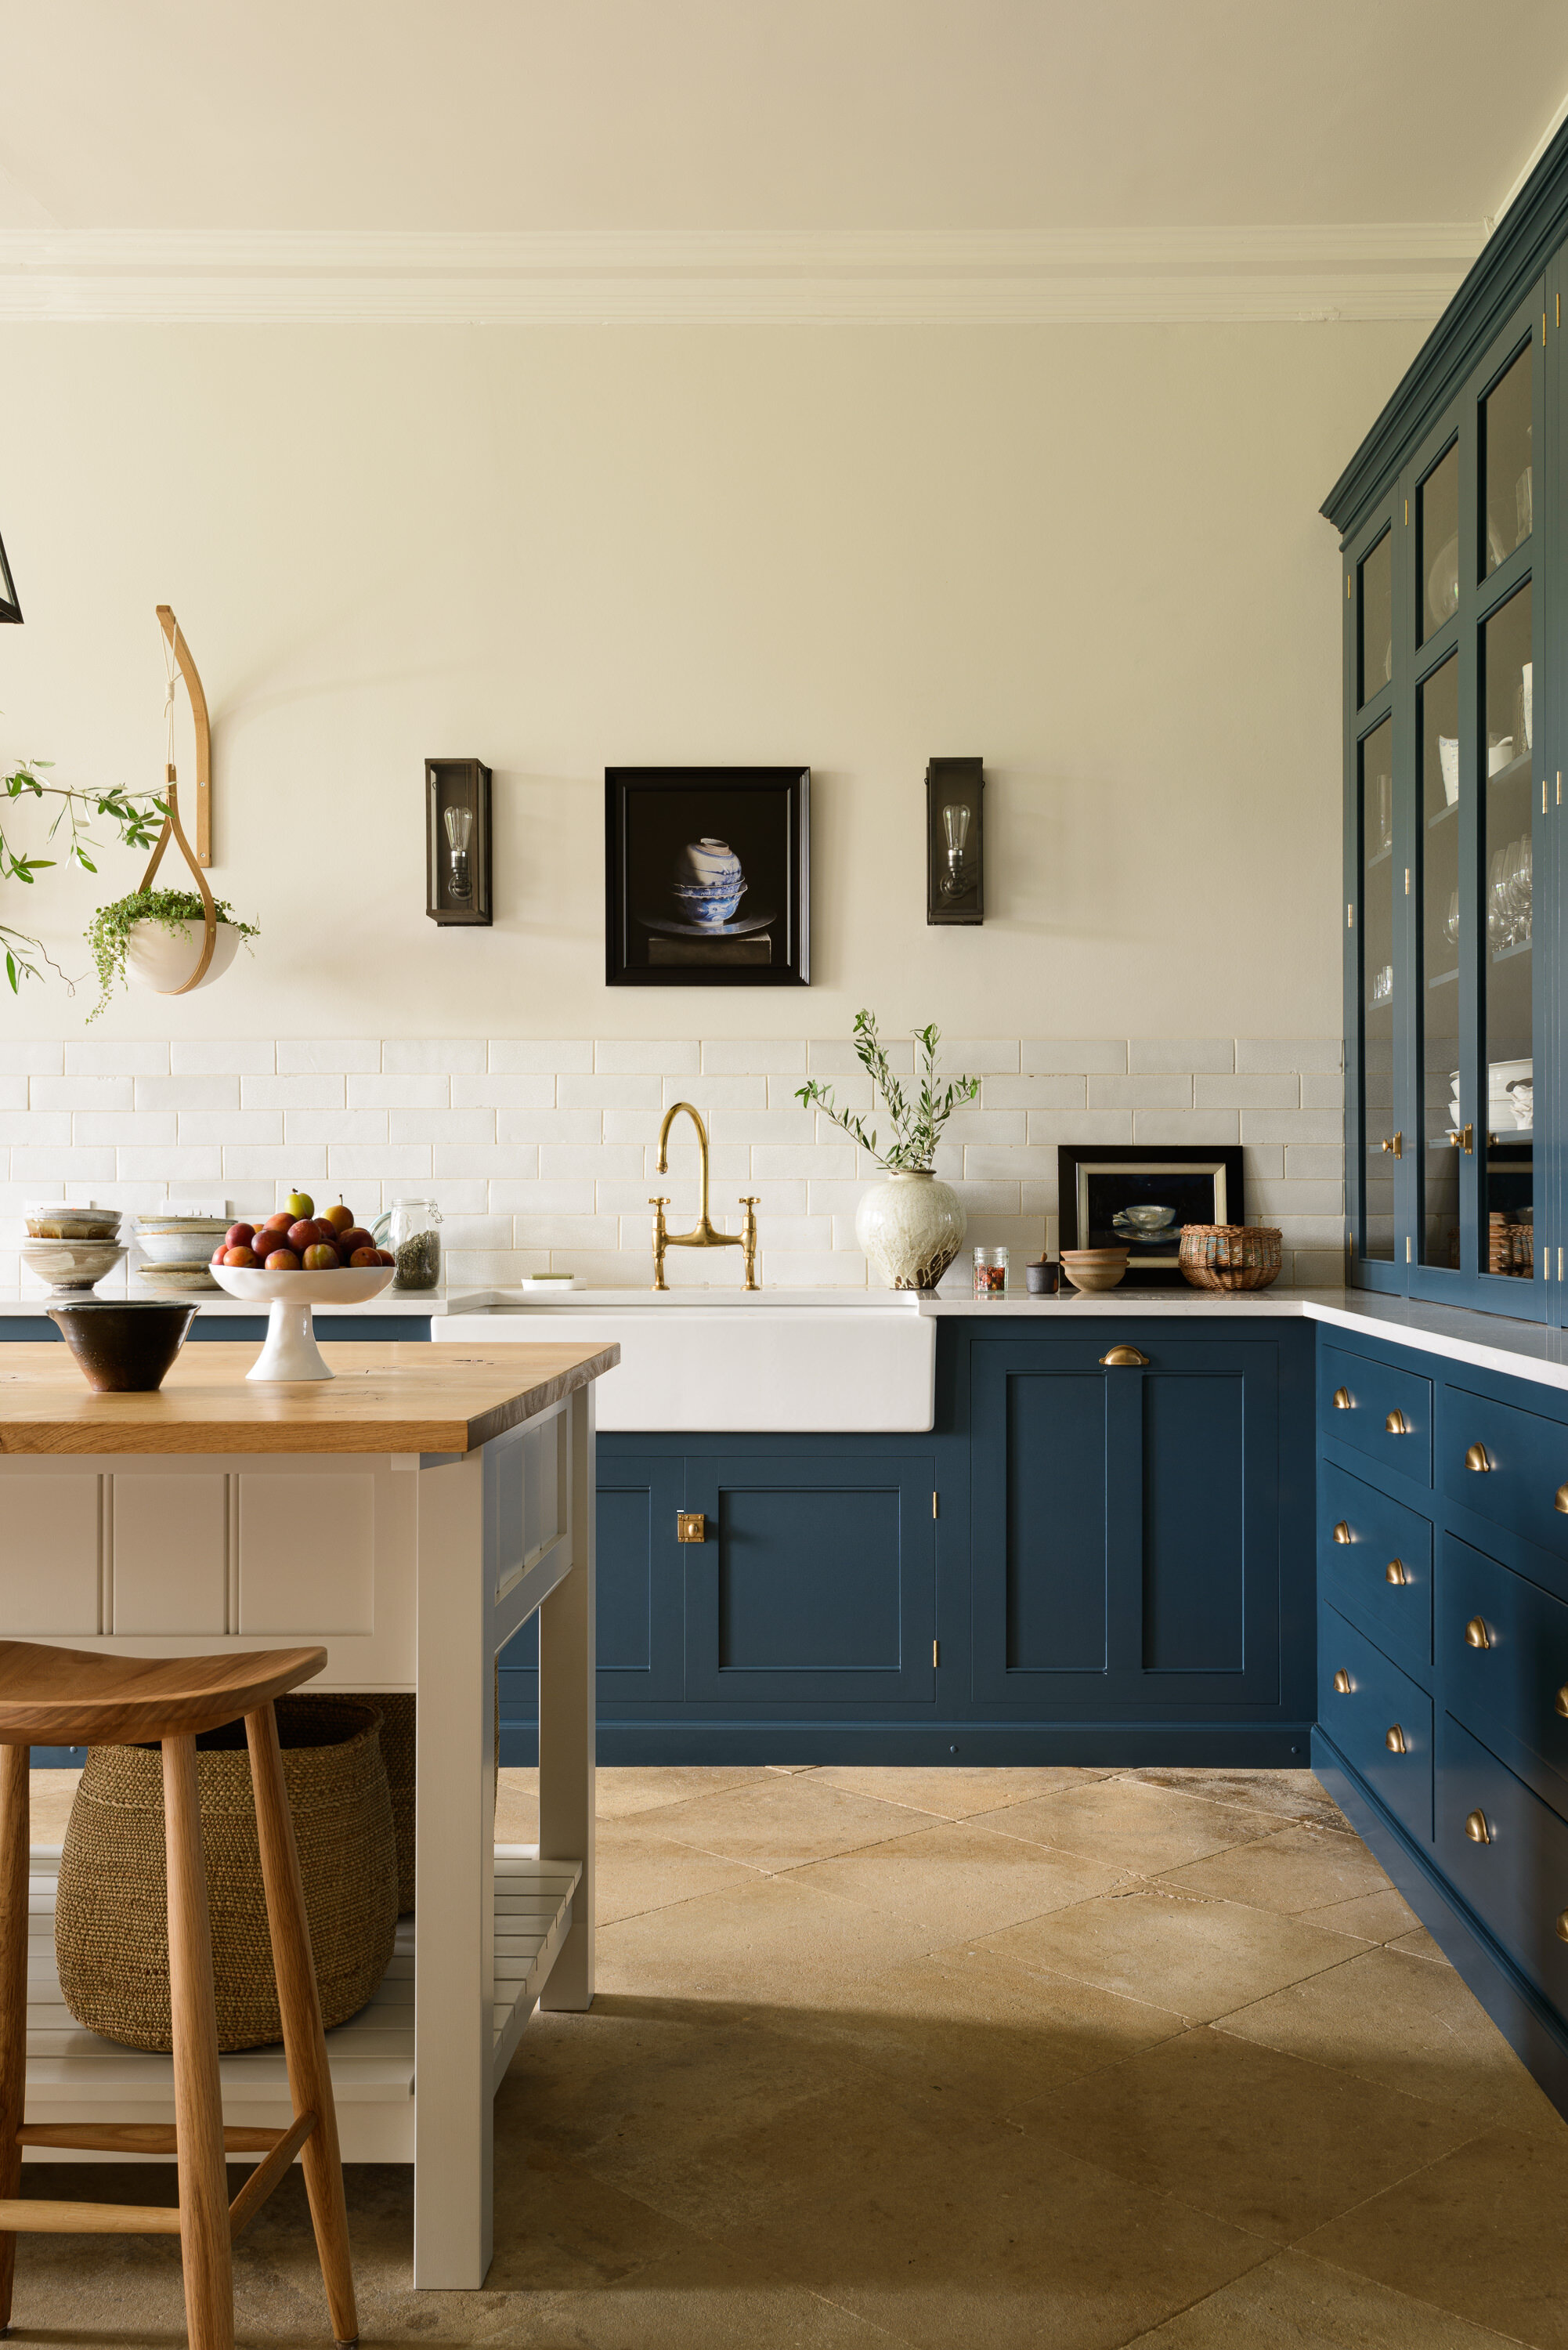 The Nordroom - A Lincolnshire Hall by deVOL